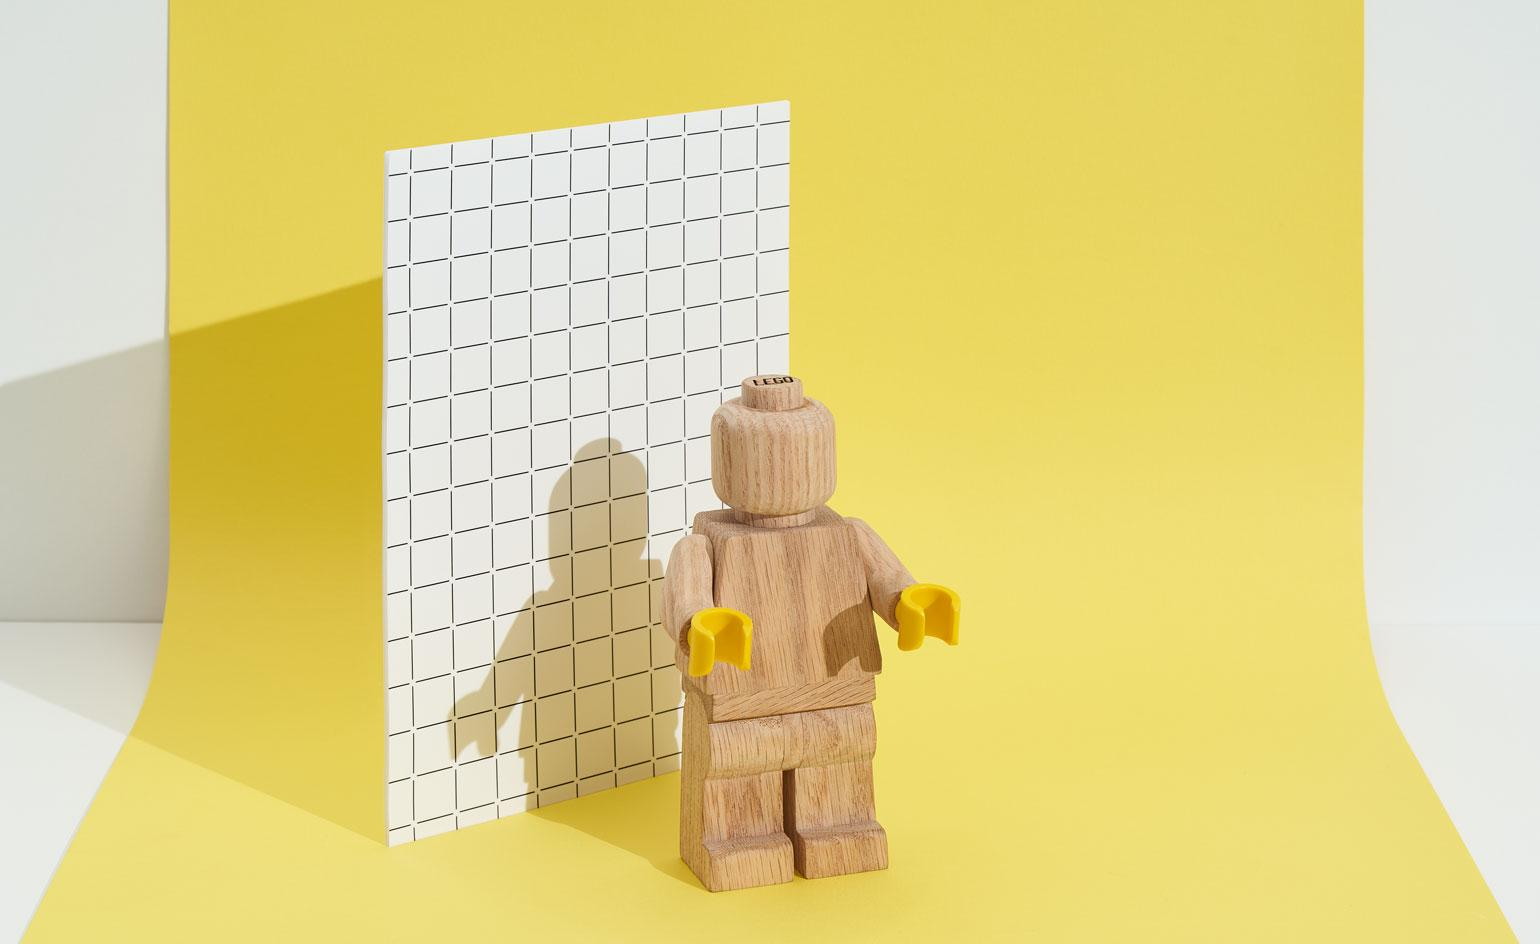 Lego's iconic 1970s mini-figure gets a new wooden look